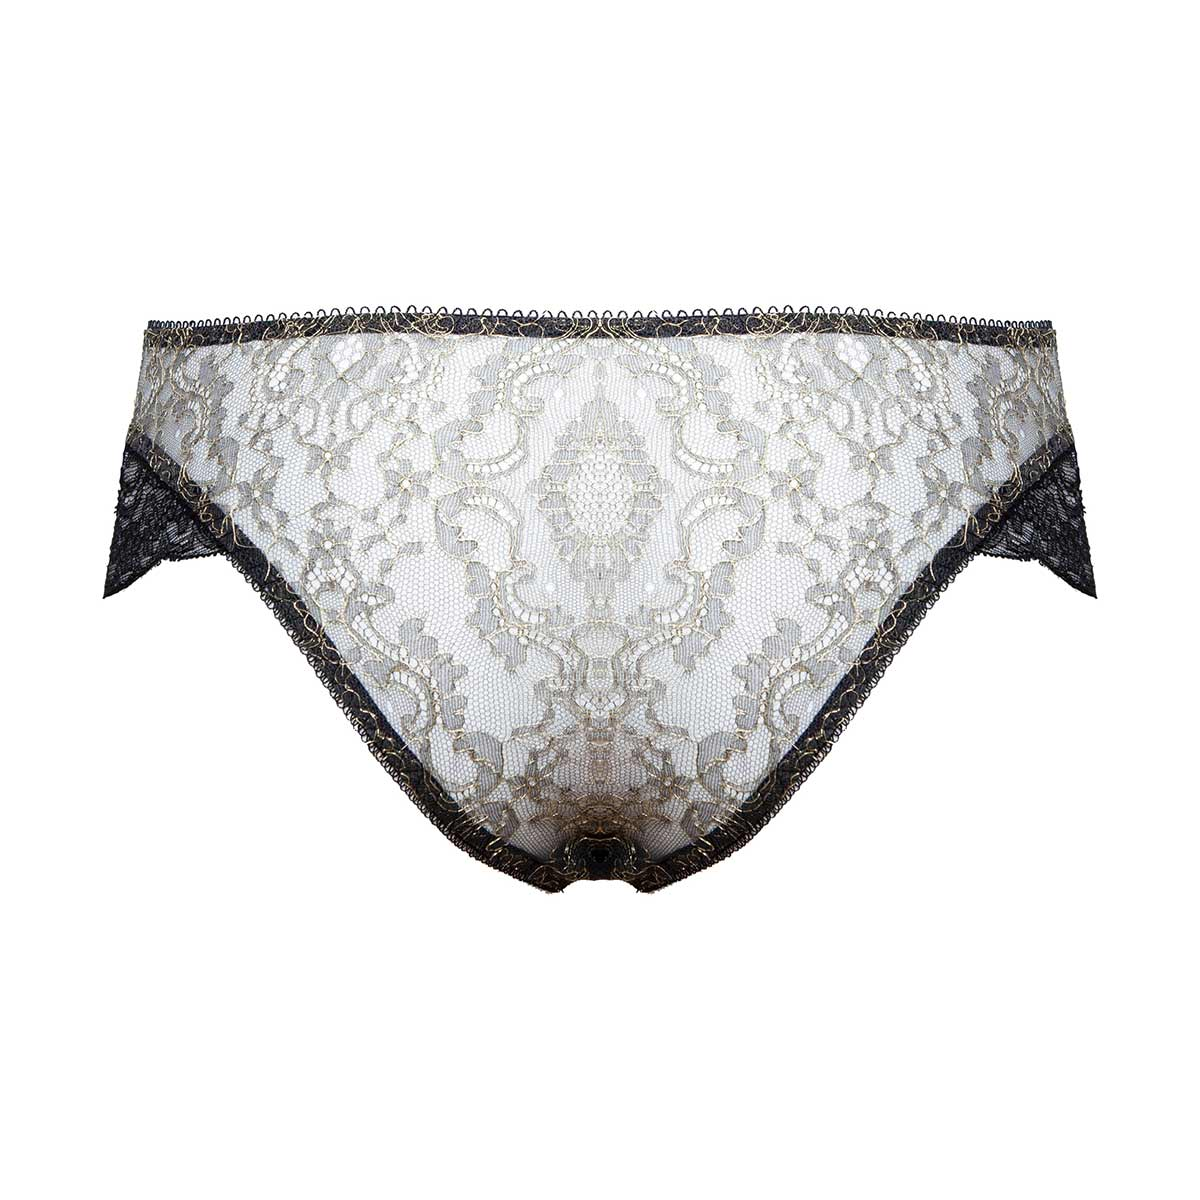 Hecate Flounced Briefs - MADE TO ORDER